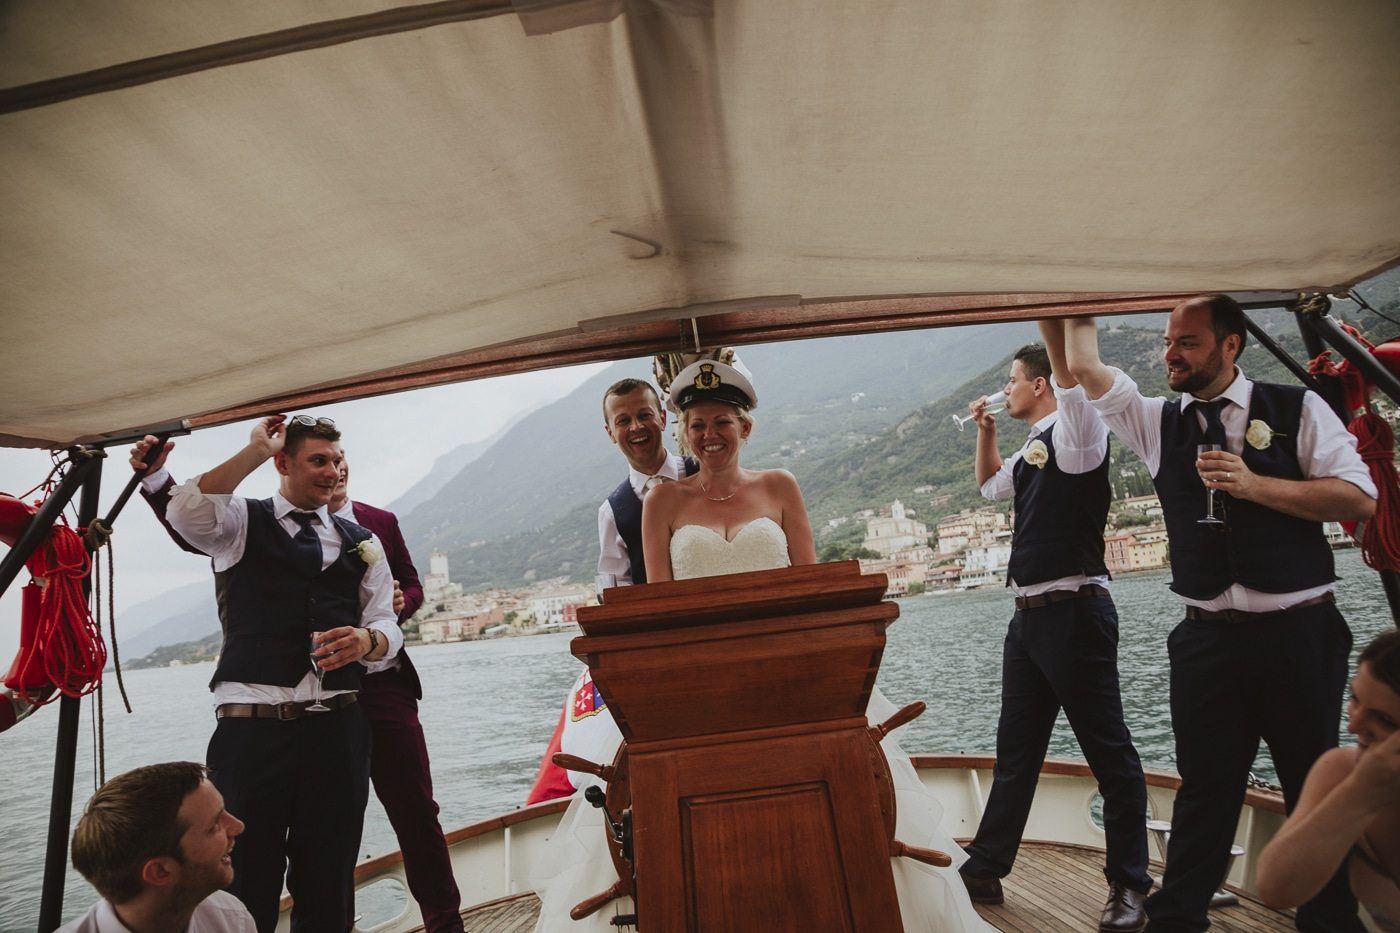 Bride in white wedding dress wearing captains hat with groom, best man and ushers in the background with wedding guests aboard a yacht floating on Lake Garda in Italy by Joshua Wyborn